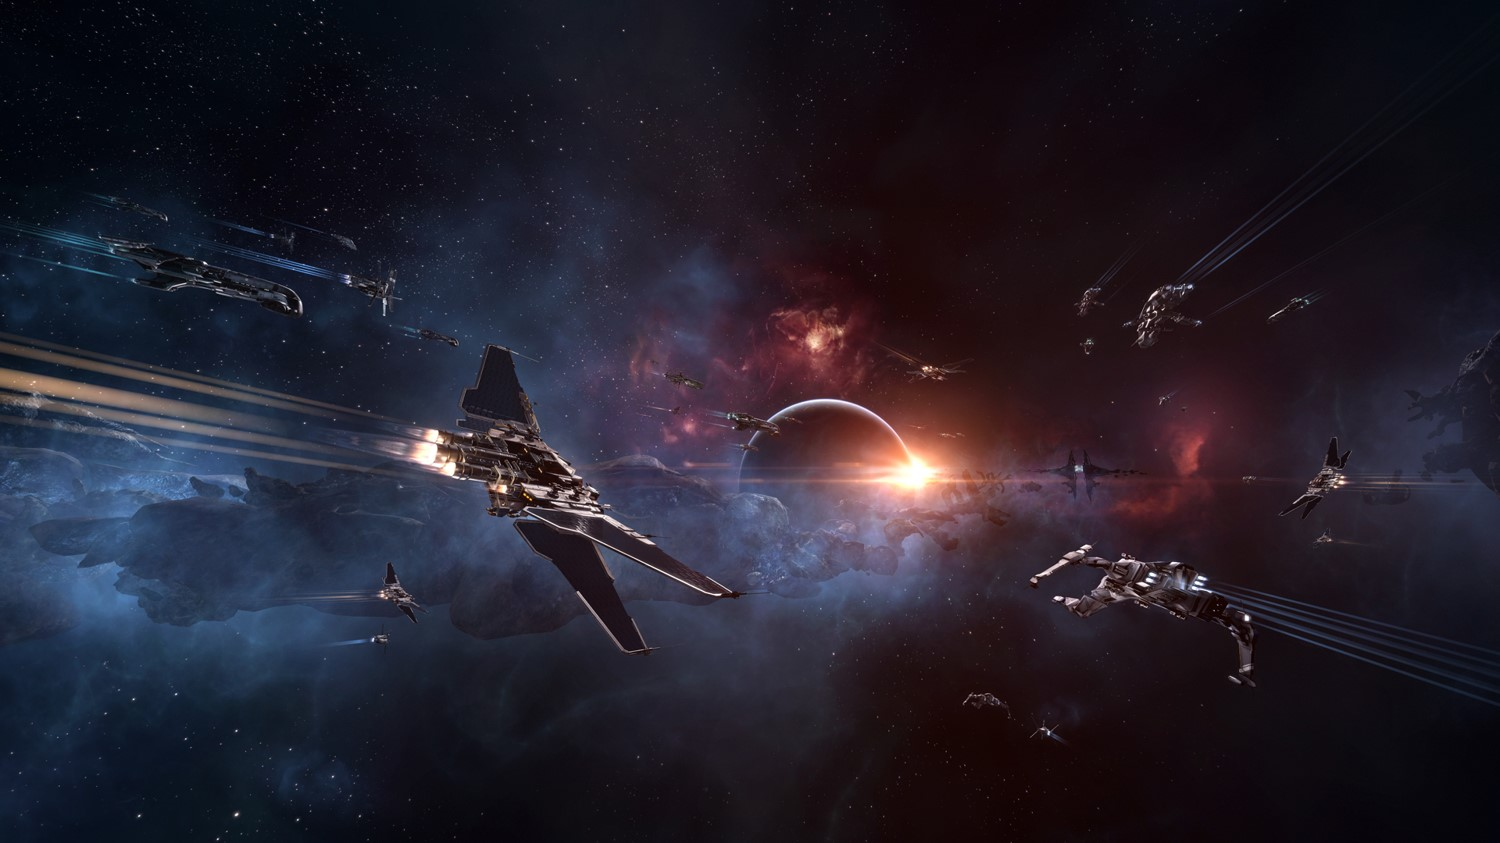 One story of revenge in Eve Online spans four long years